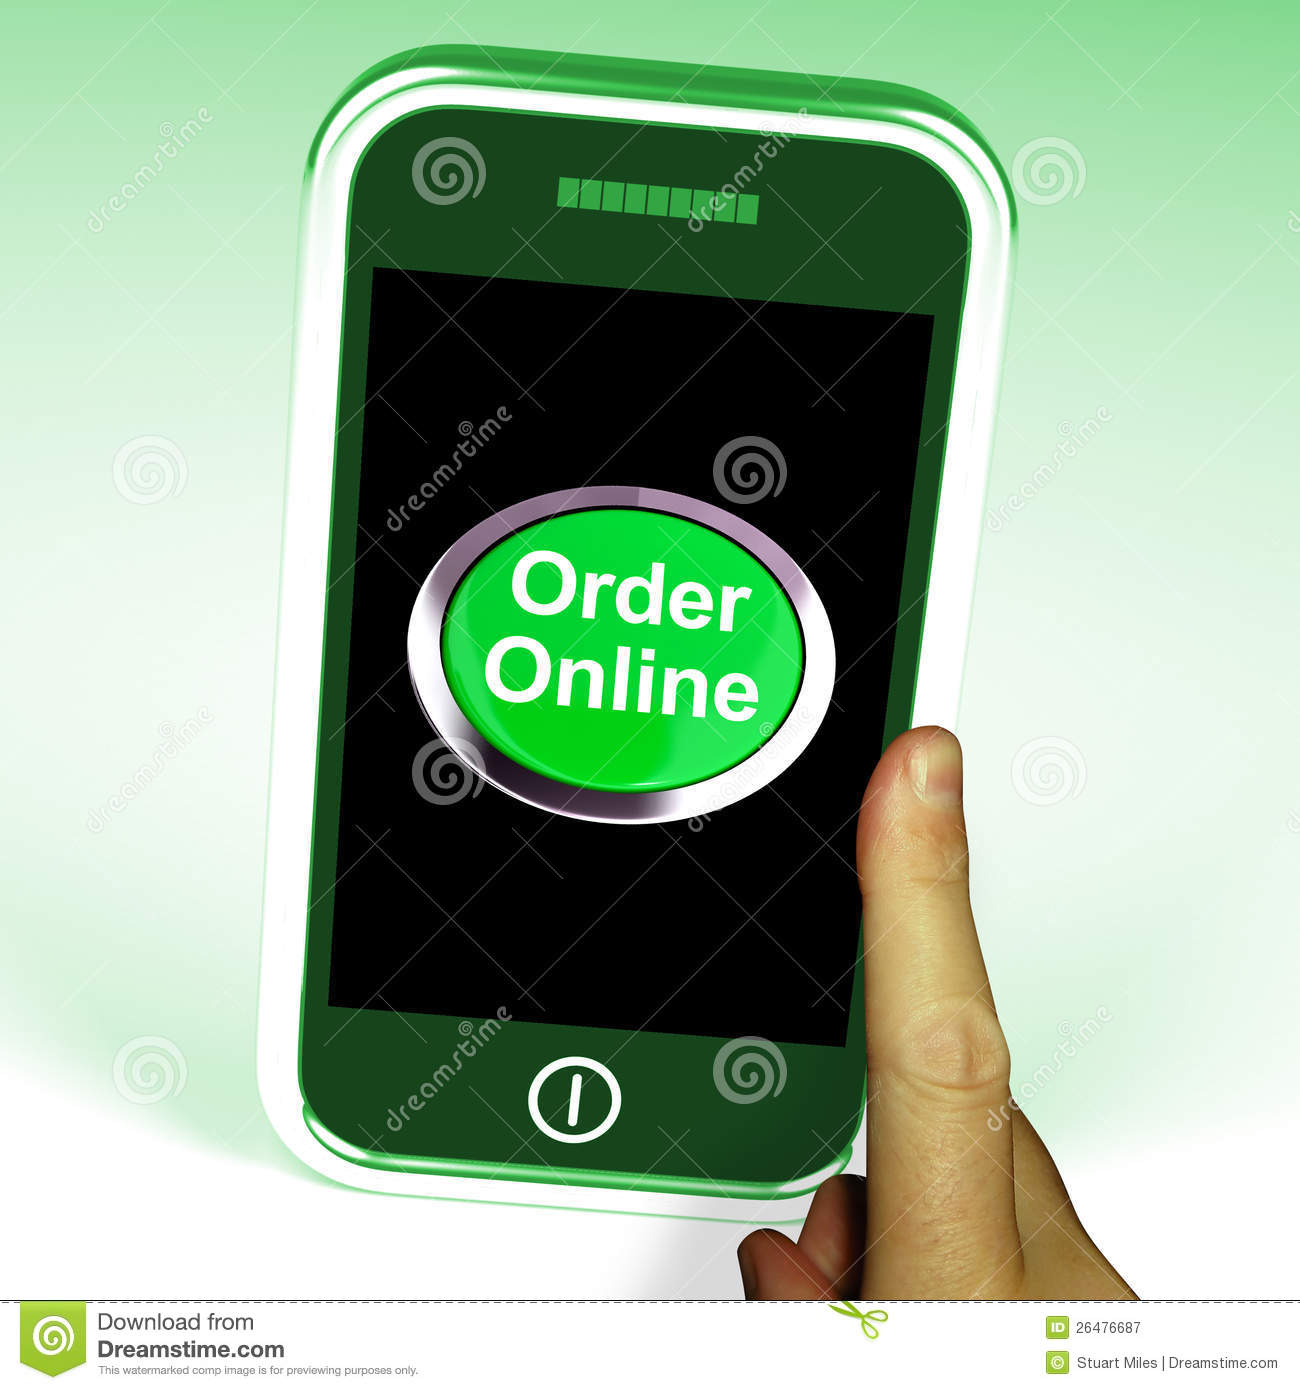 Order Online Button On Mobile Royalty Free Stock Photography - Image ...: www.dreamstime.com/royalty-free-stock-photography-order-online...